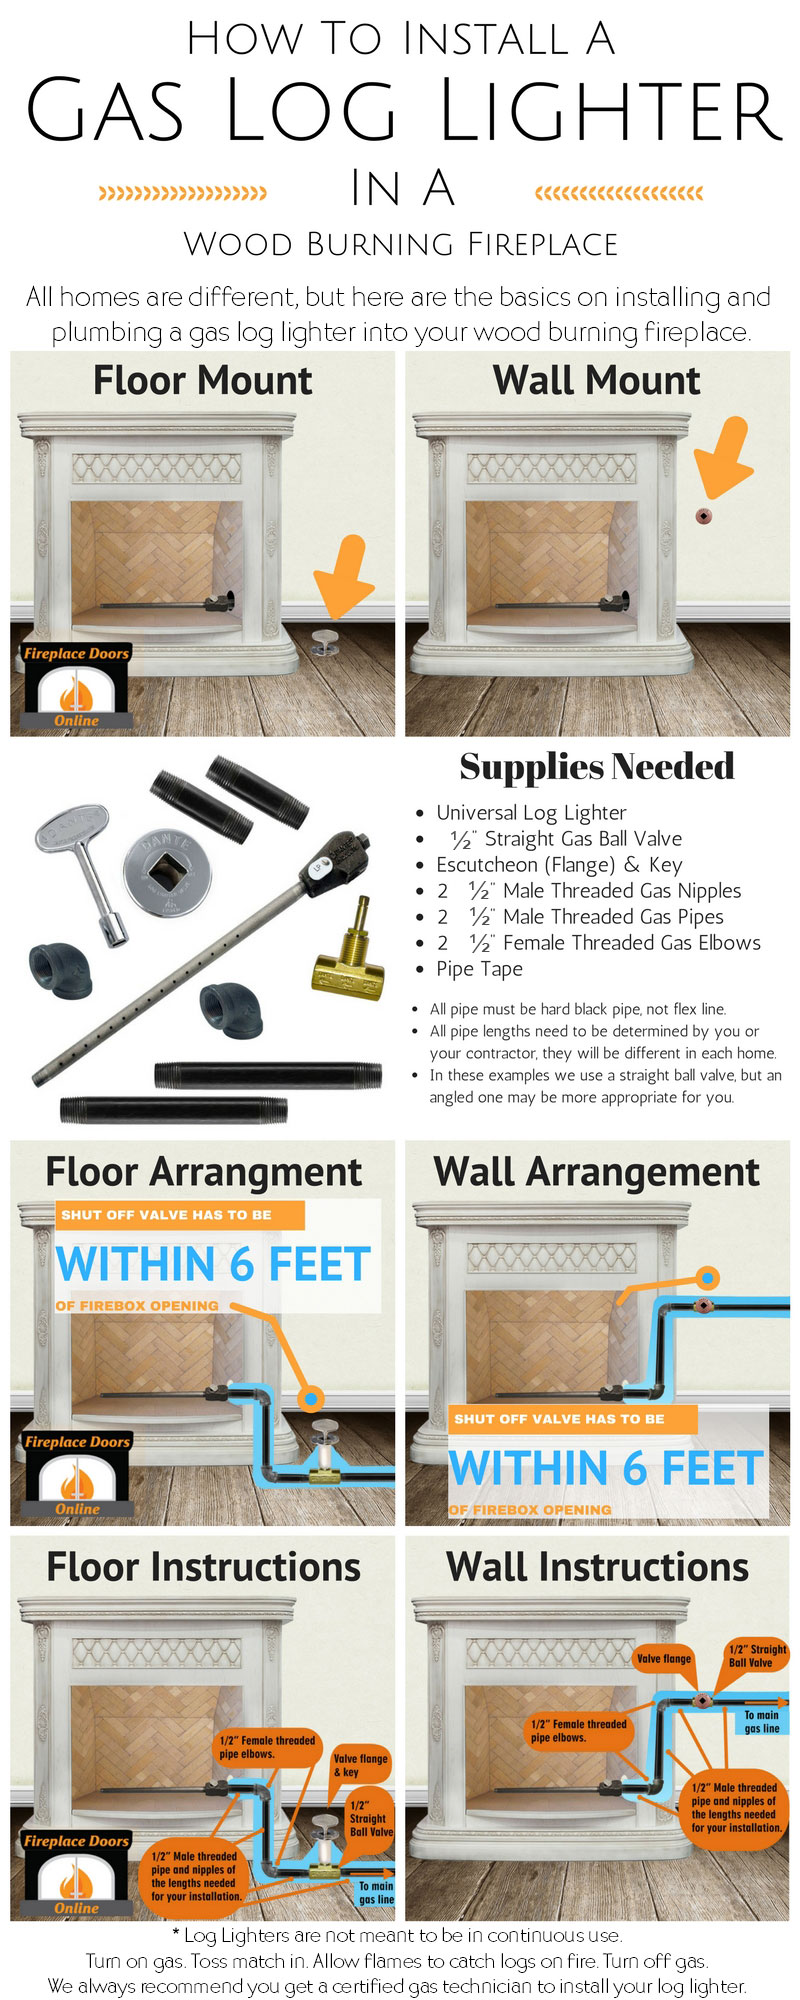 INFOGRAPHIC -How to install a gas log lighter in a wood burning fireplace.